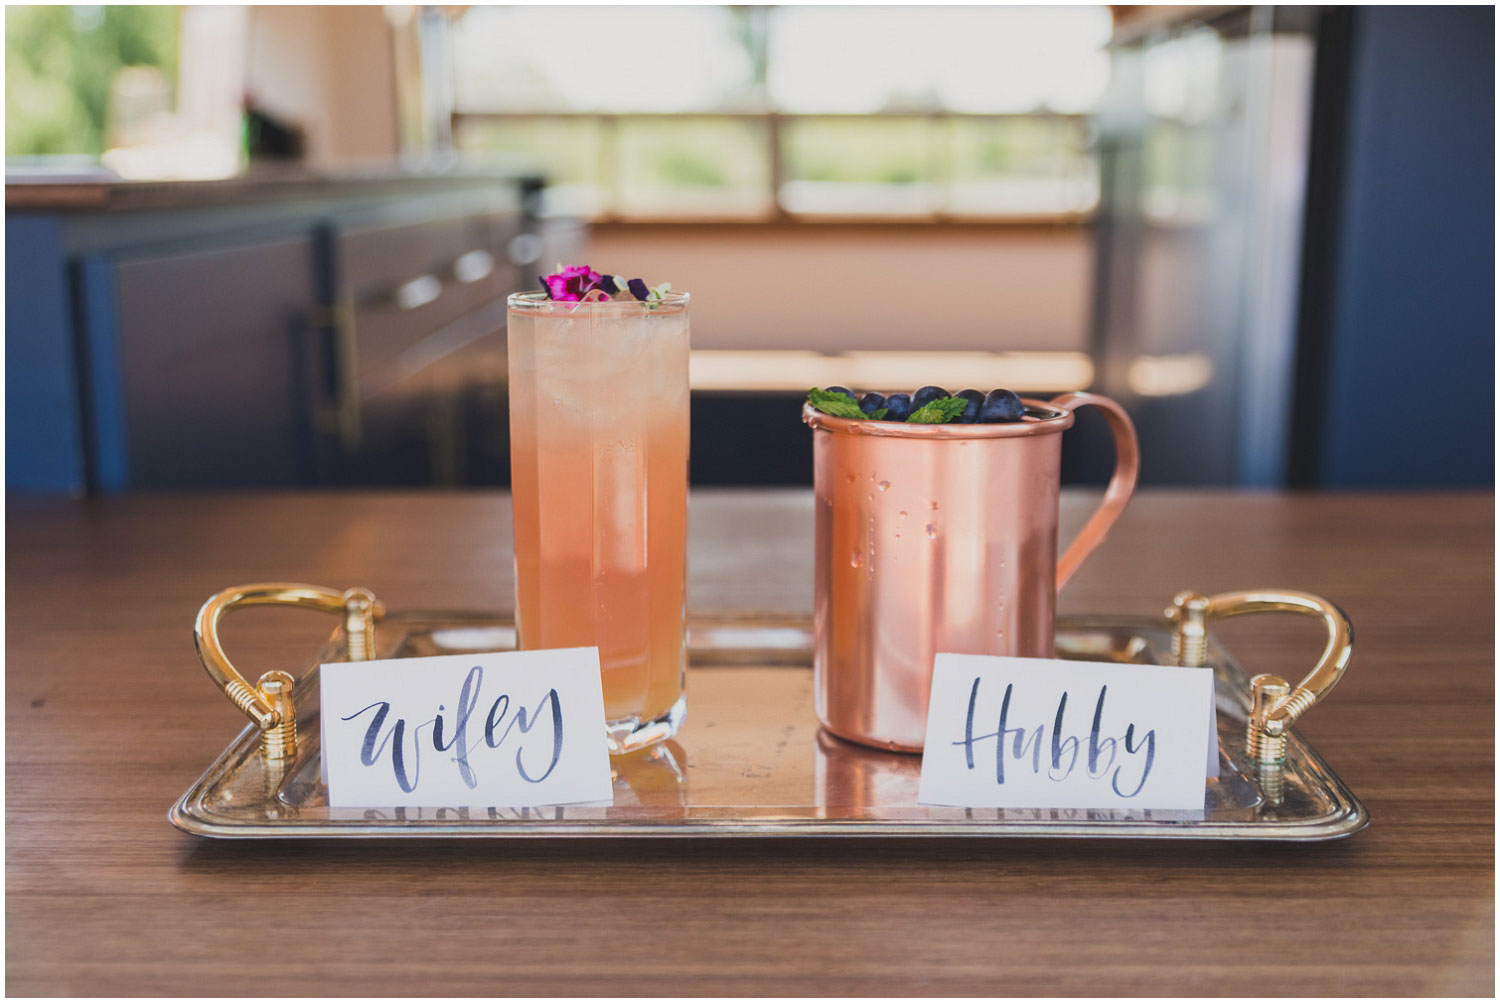 signature cocktail inspiration garden mule and the frenchy by swig rig with hubby and wifey name tags